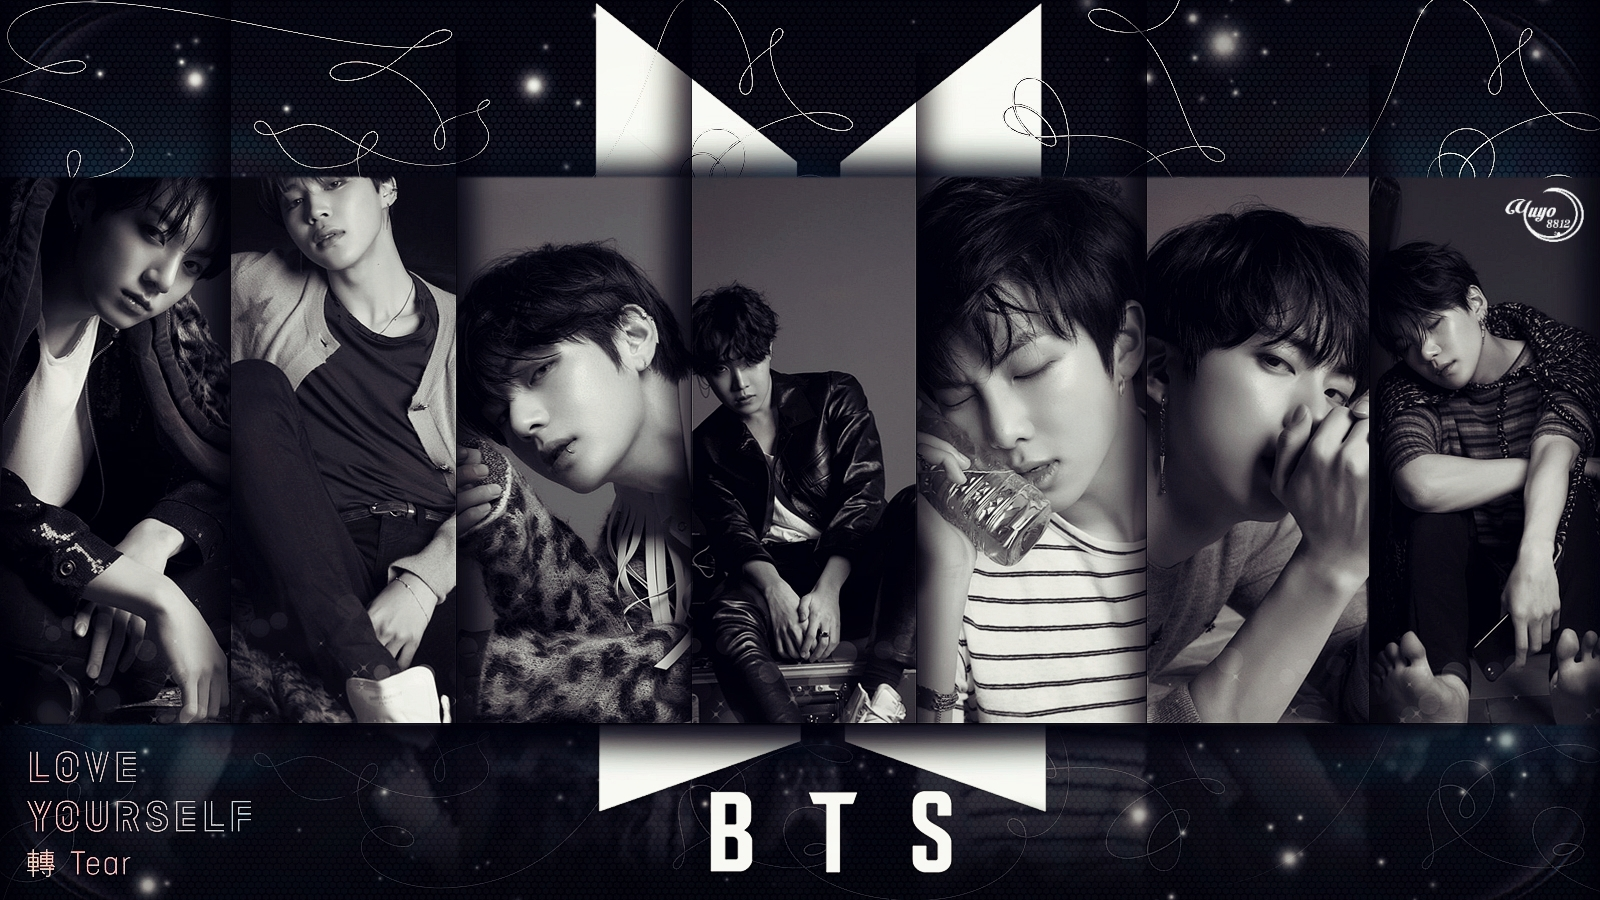 BTS FAKE LOVE WALLPAPER   yulliyo8812 Wallpaper 41349111 1600x900